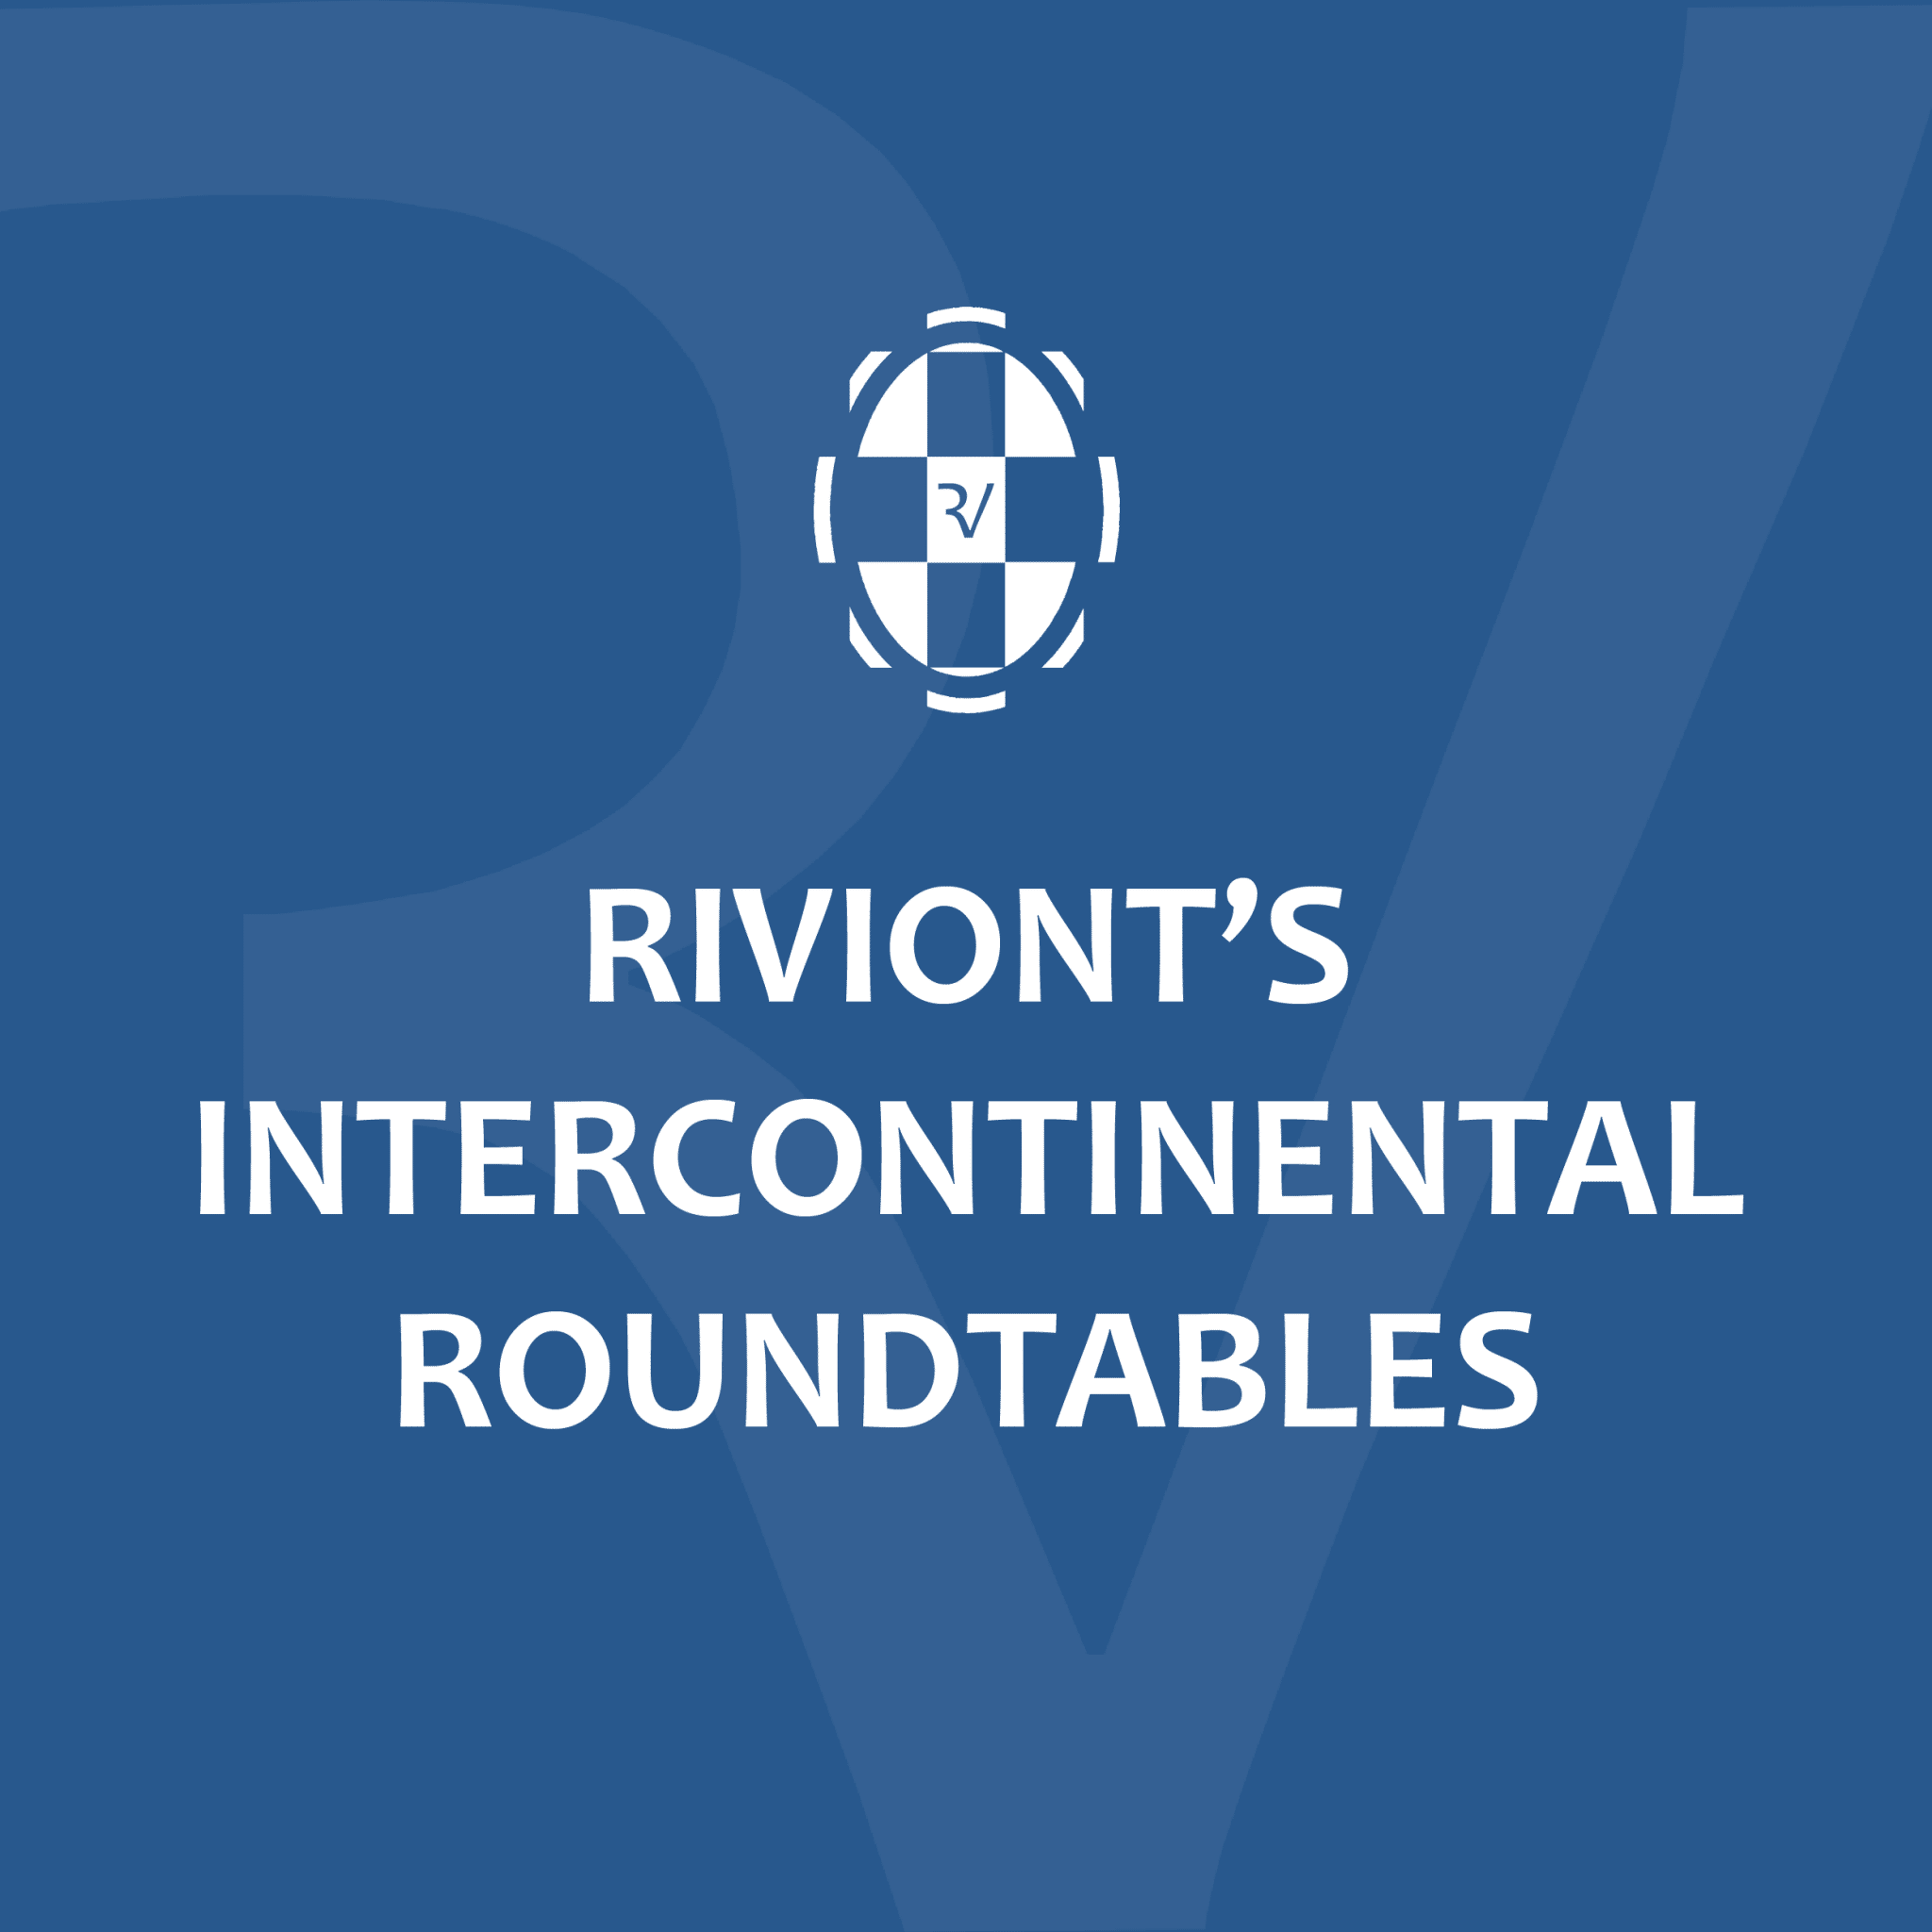 RIVIONT'S INTERCONTINENTAL ROUNDTABLES